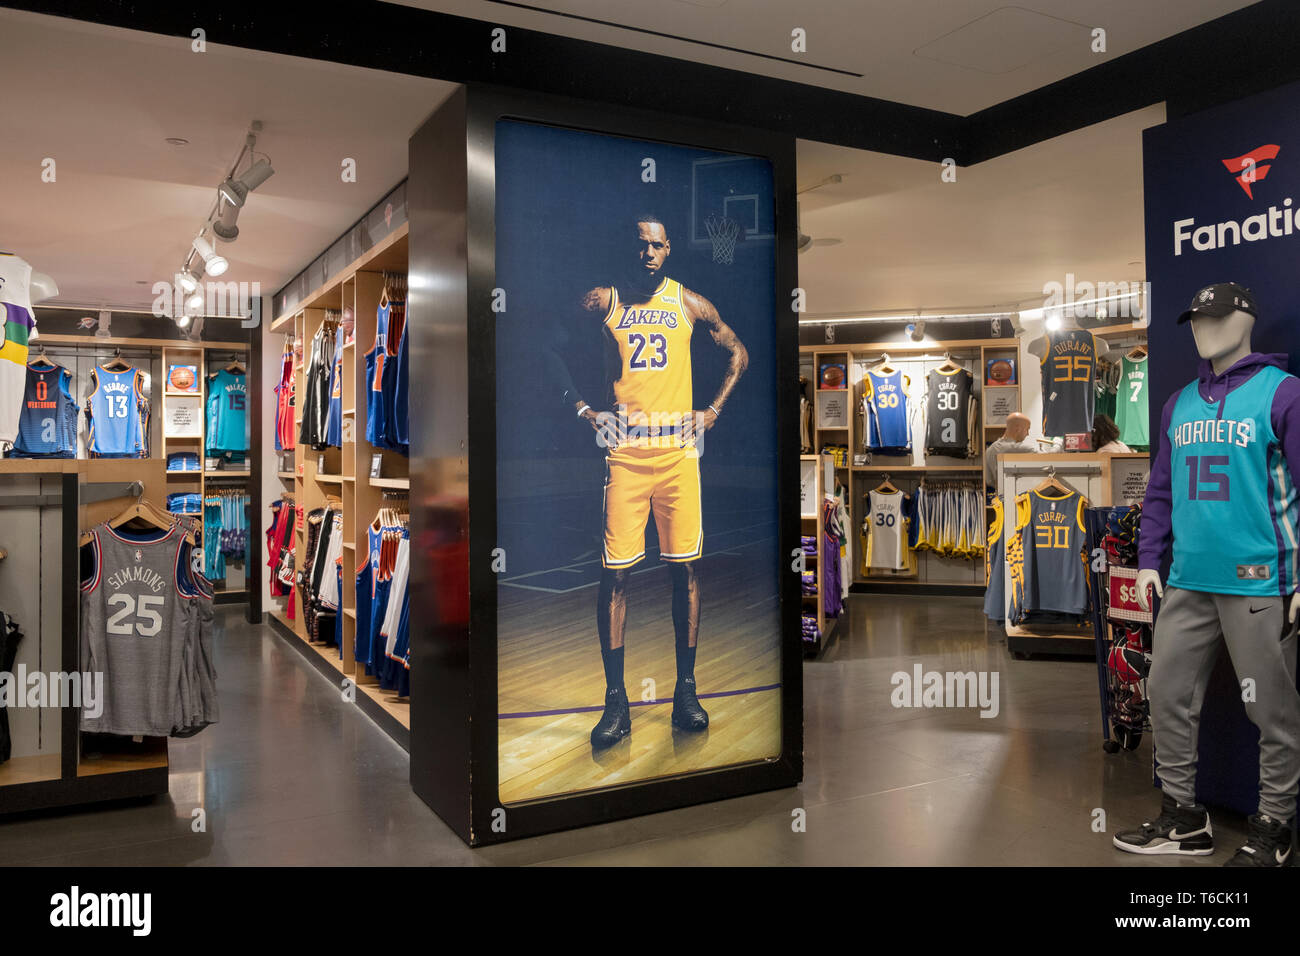 An area in the lower level inside the NBA store on Fifth Ave. in MIdtown, Manhattan, New York City. Showing player replica jerseys for sale. Stock Photo